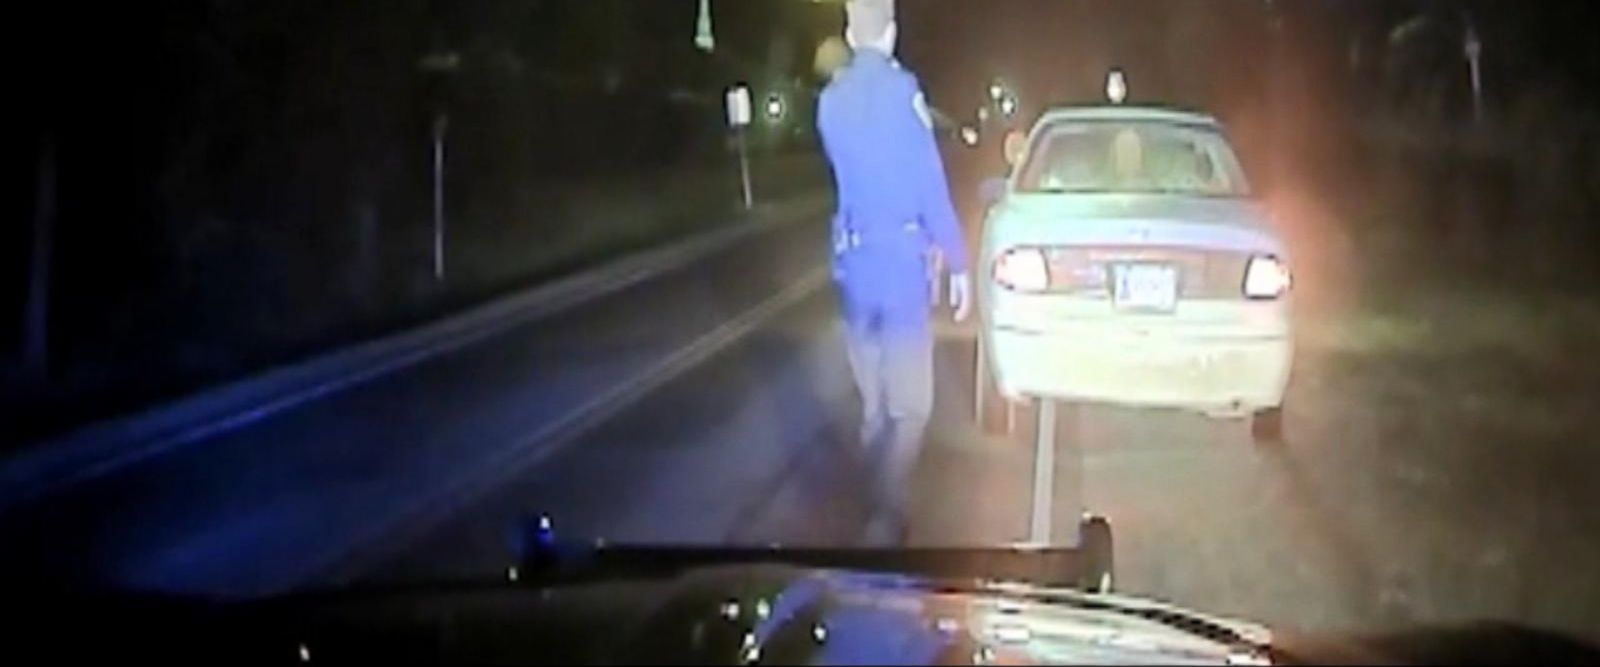 VIDEO: Rookie Oklahoma police officer dies after exchanging gunfire with suspect with broken taillight